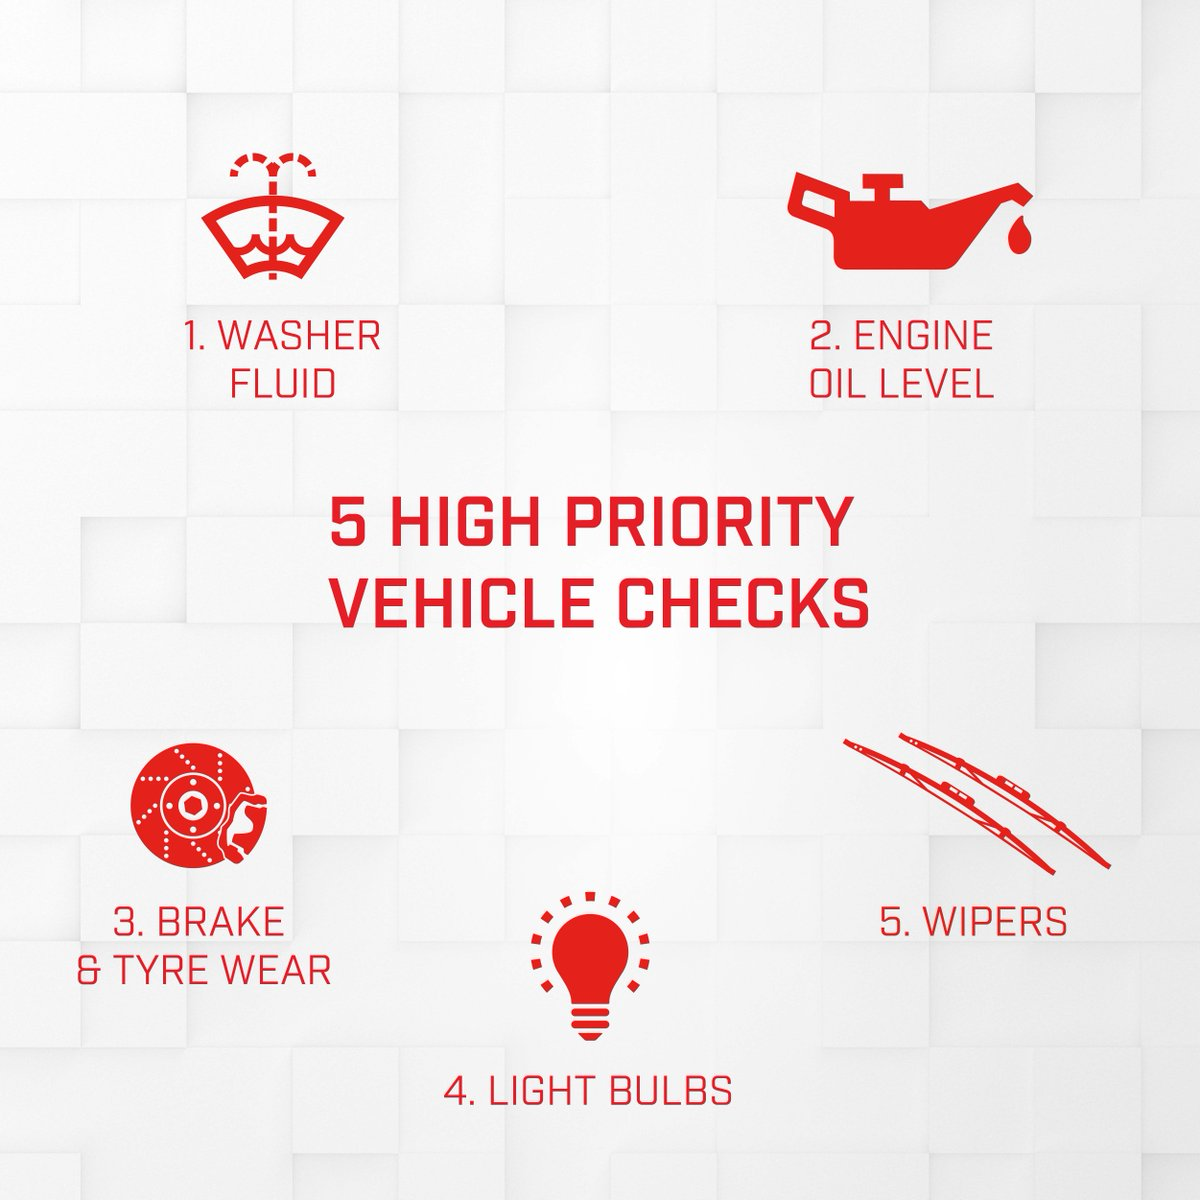 Before heading out onto the open road this December, here are 5 high priority vehicle checks we recommend for #safety and performance! https://t.co/SRAQK8jUZL